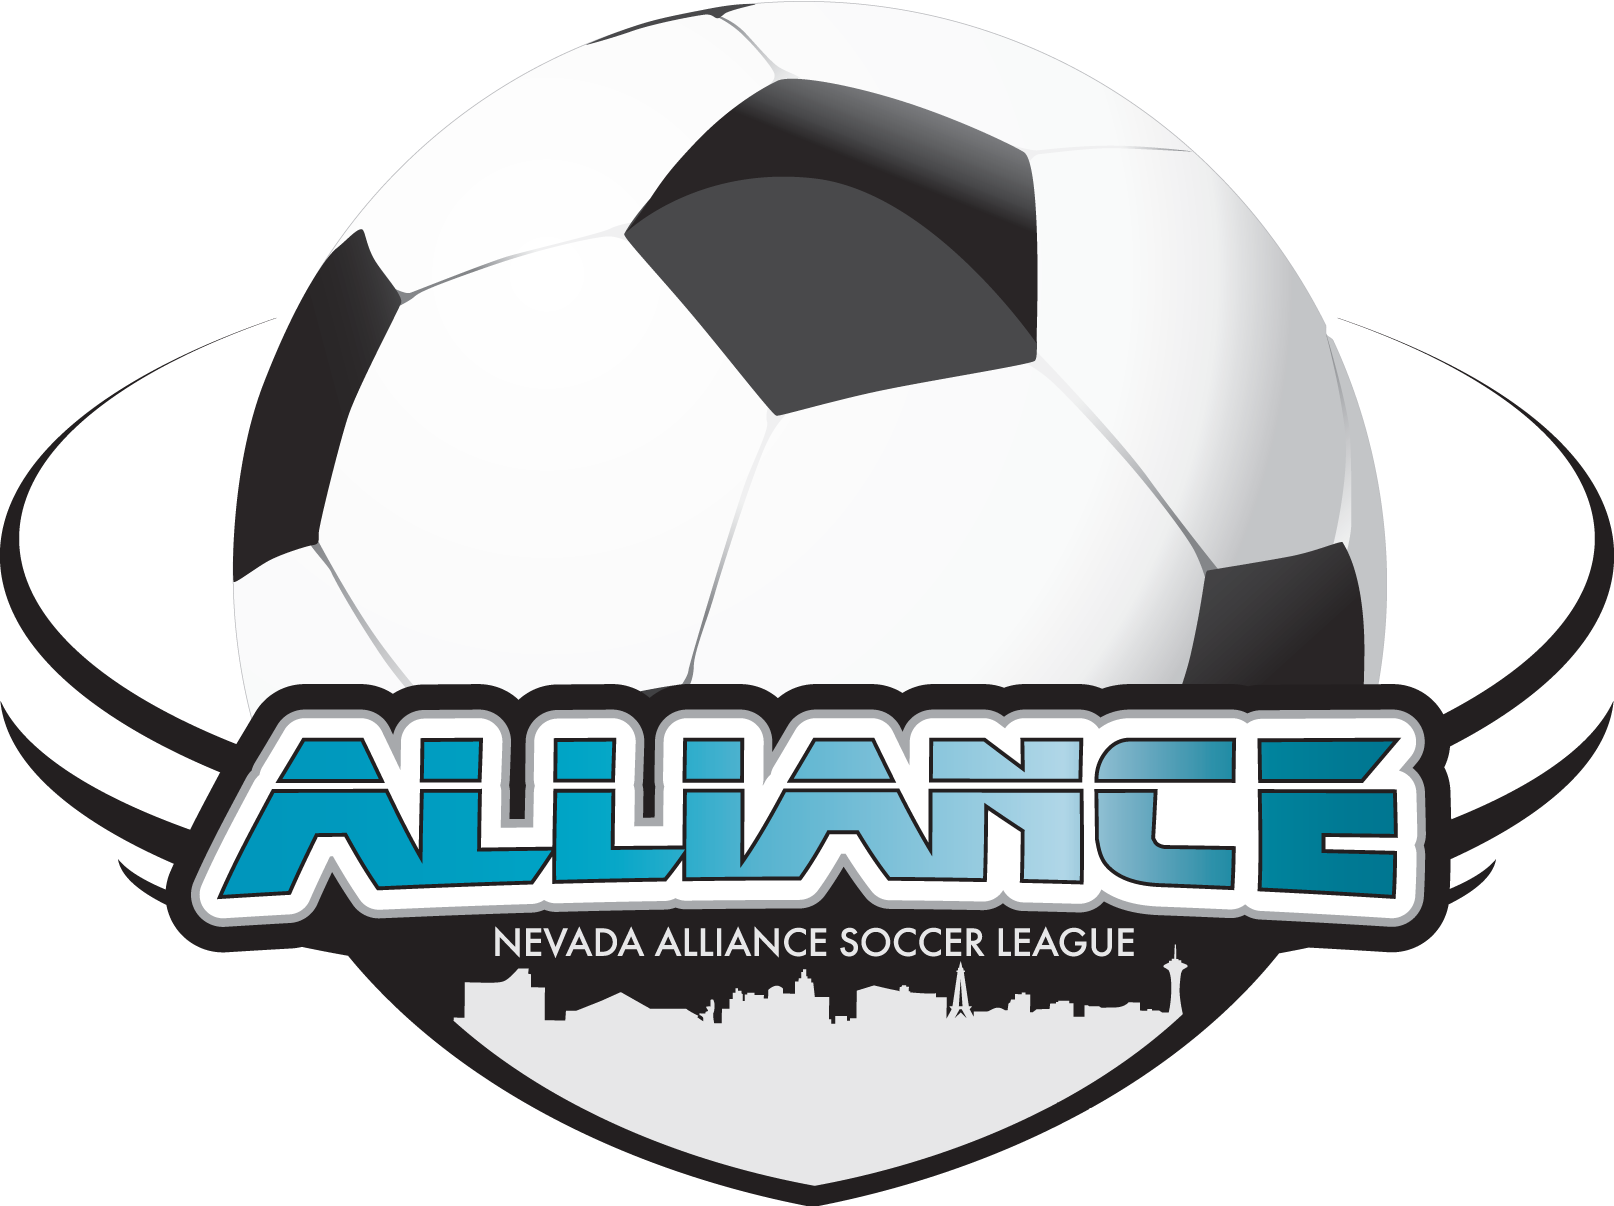 Nevada Alliance Soccer League Logo